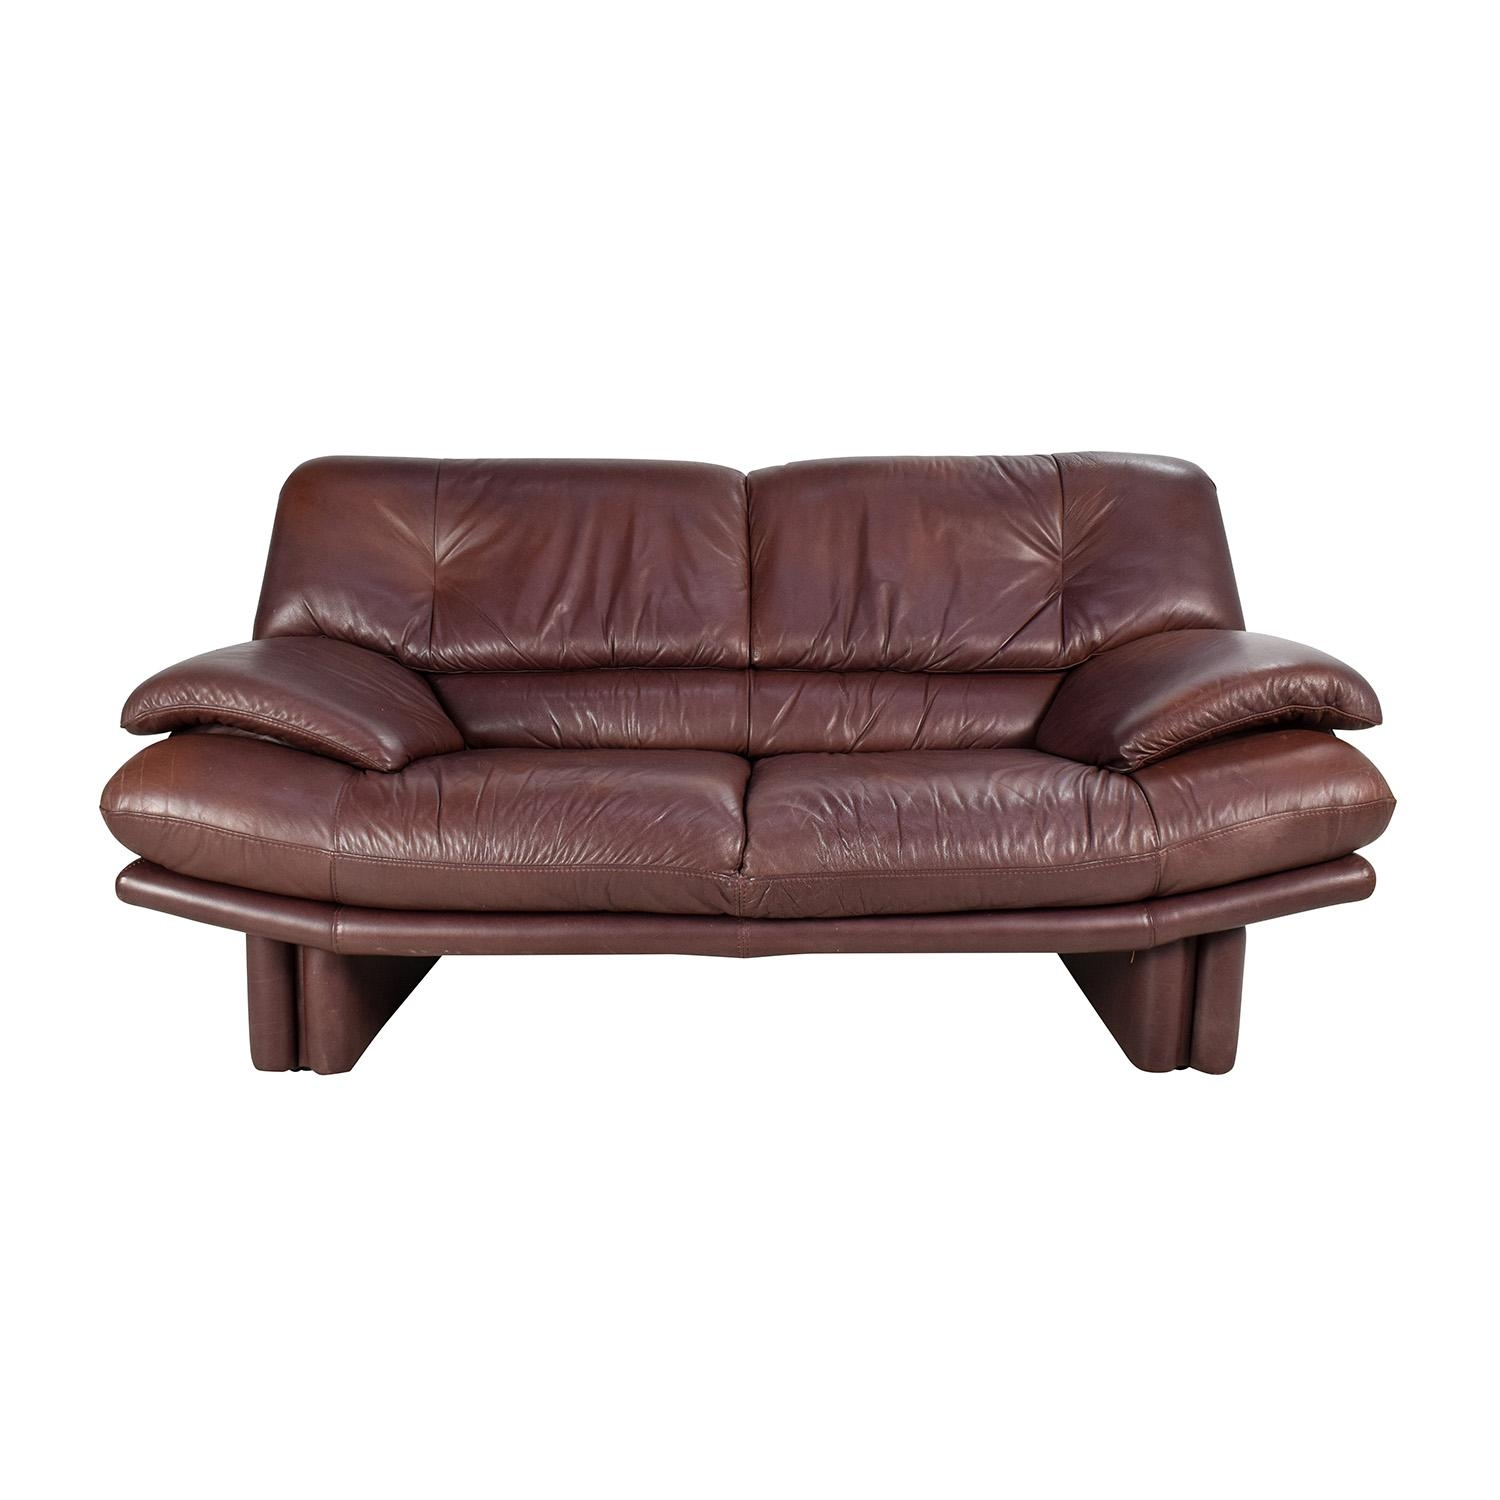 67% Off – Maurice Villency Maurice Villency Brown Leather Sofa / Sofas Intended For Canterbury Leather Sofas (View 17 of 20)